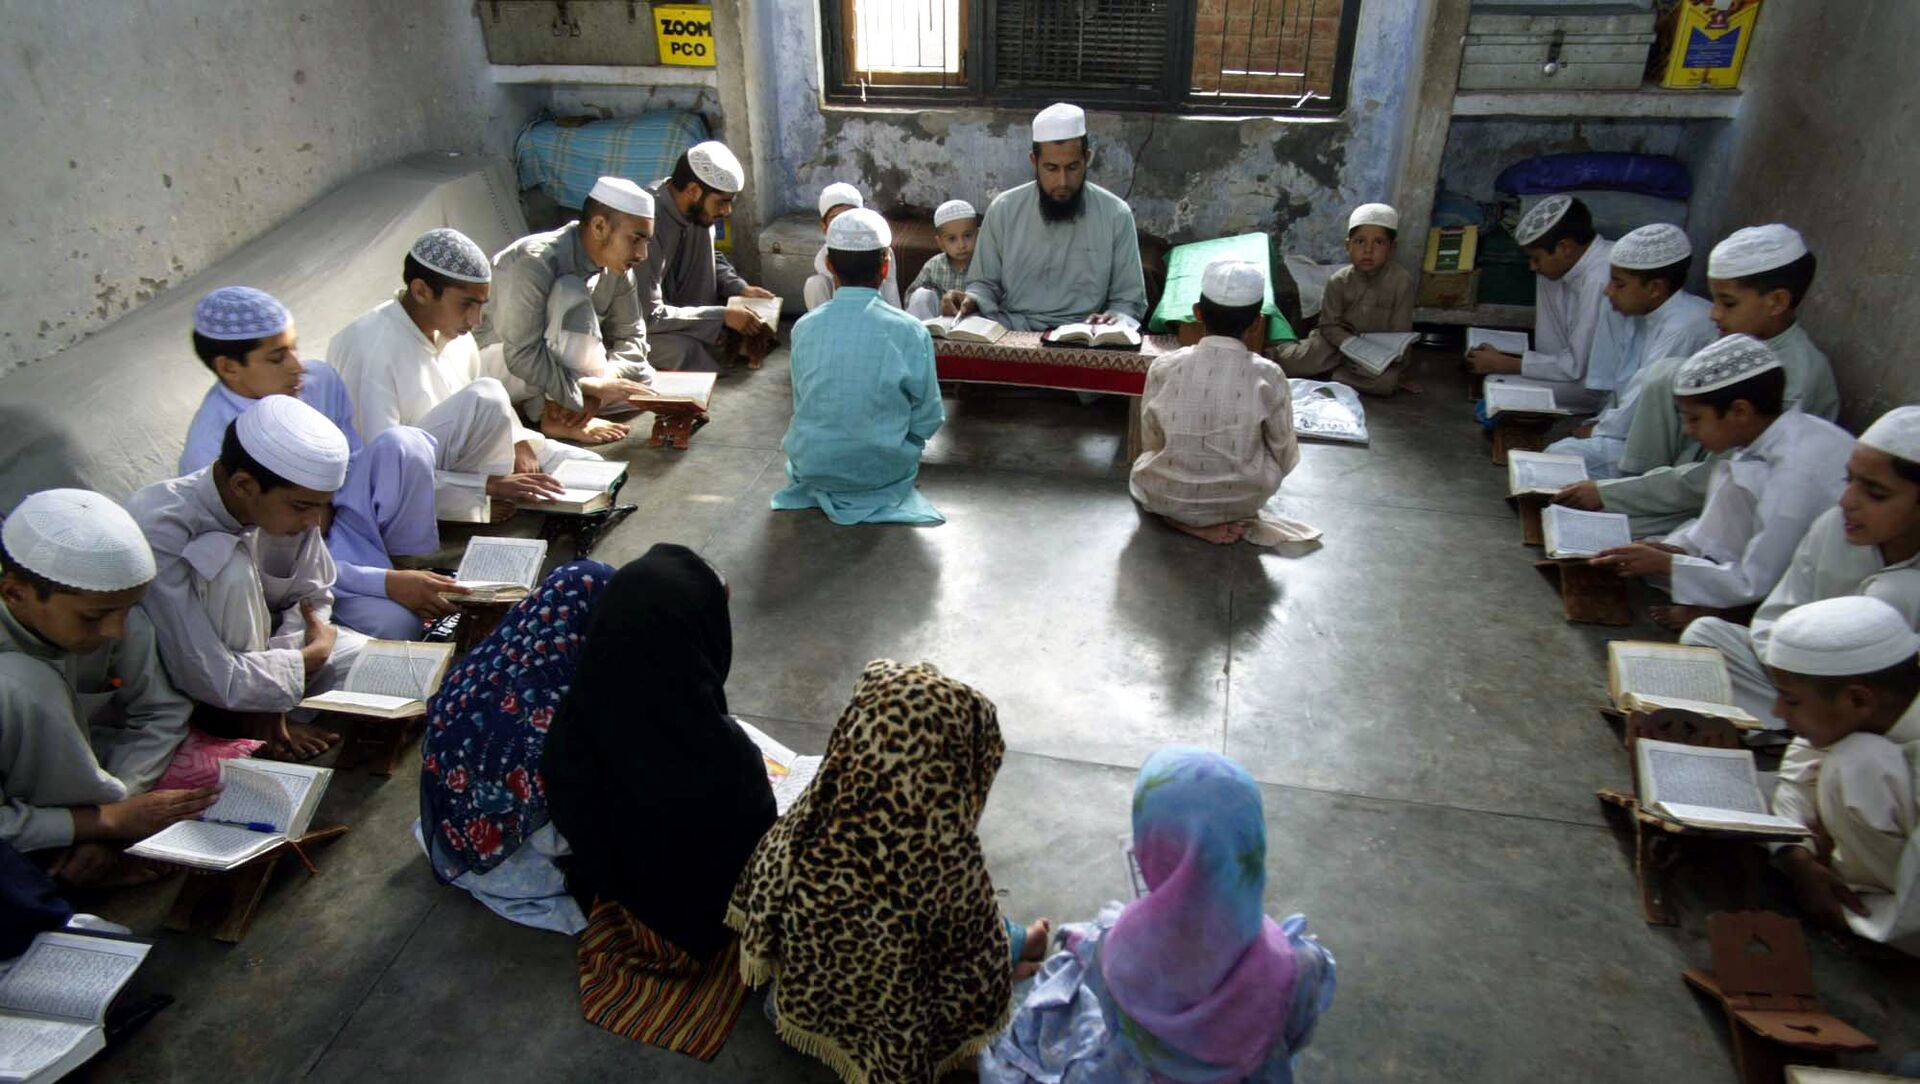 Muslim students from remote hilly areas of Jammu study inside a madrasa, or religious school, on the outskirts of Jammu, India, Saturday, July 1, 2006 - Sputnik International, 1920, 10.08.2021